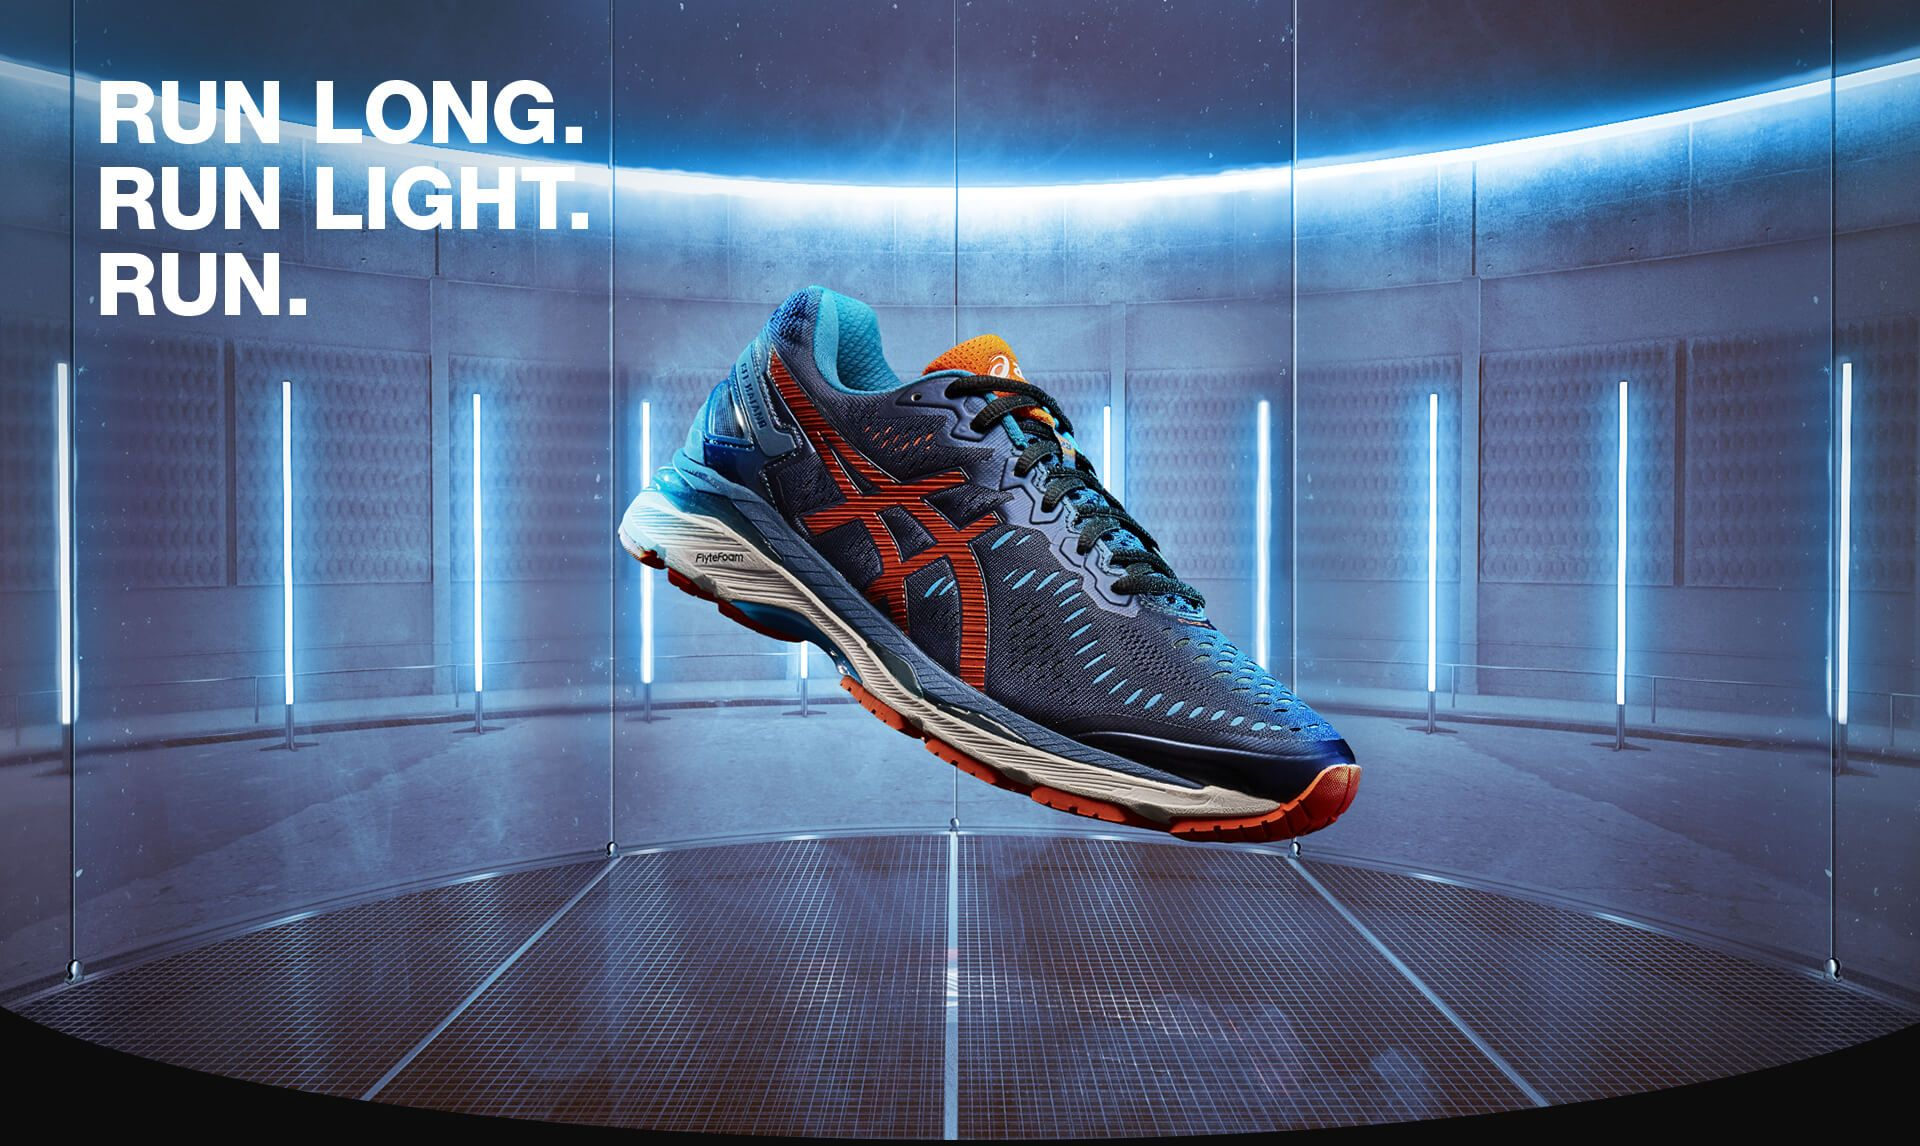 Pin by wang on ads | Asics, Shoe advertising, Shoes ads